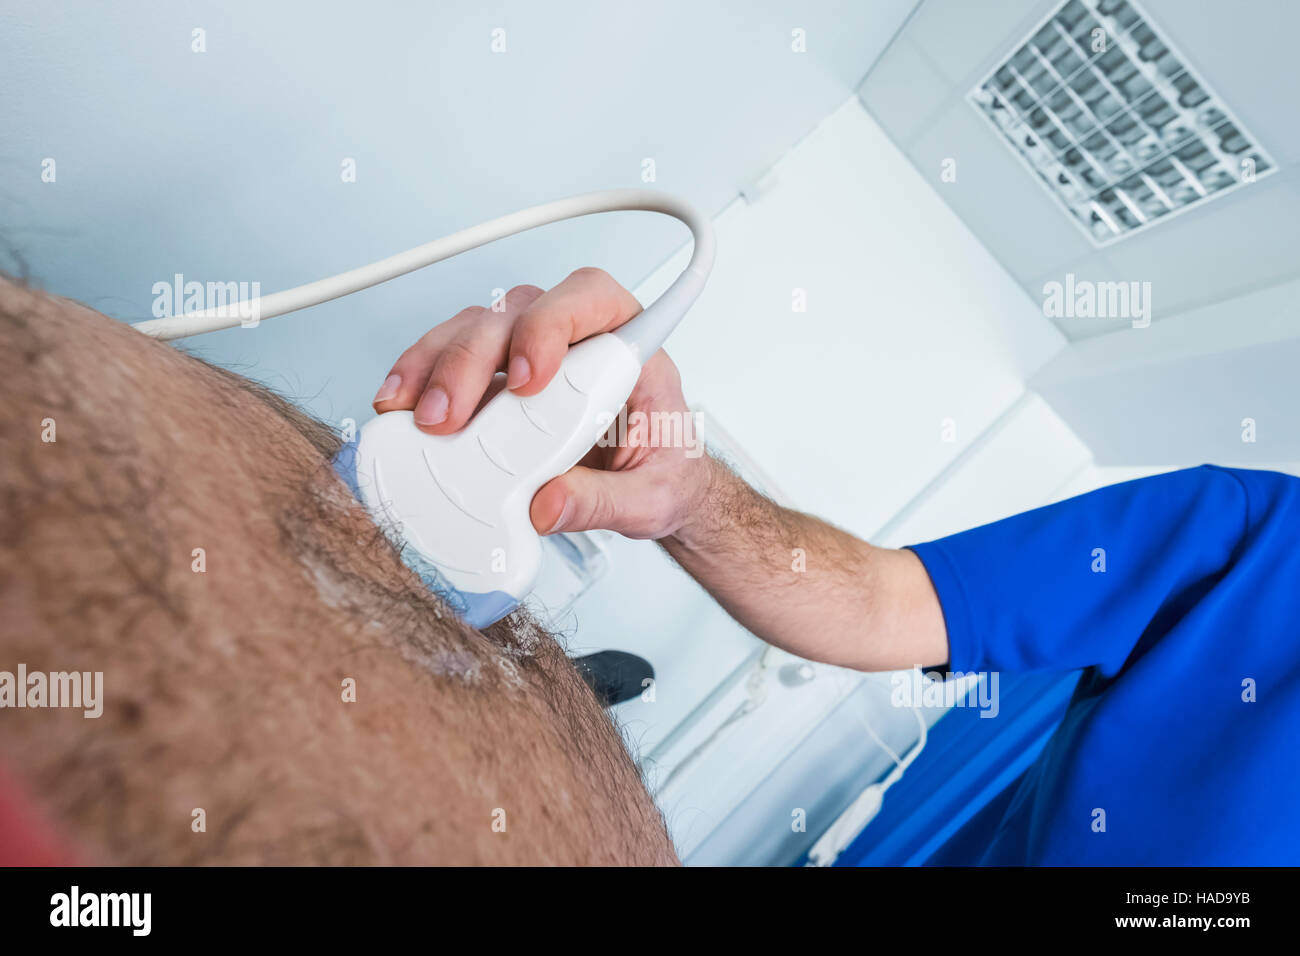 England, London, Guy's Hospital, Ultrasound for Abdominal Aortic Aneruysm Screening - Stock Image